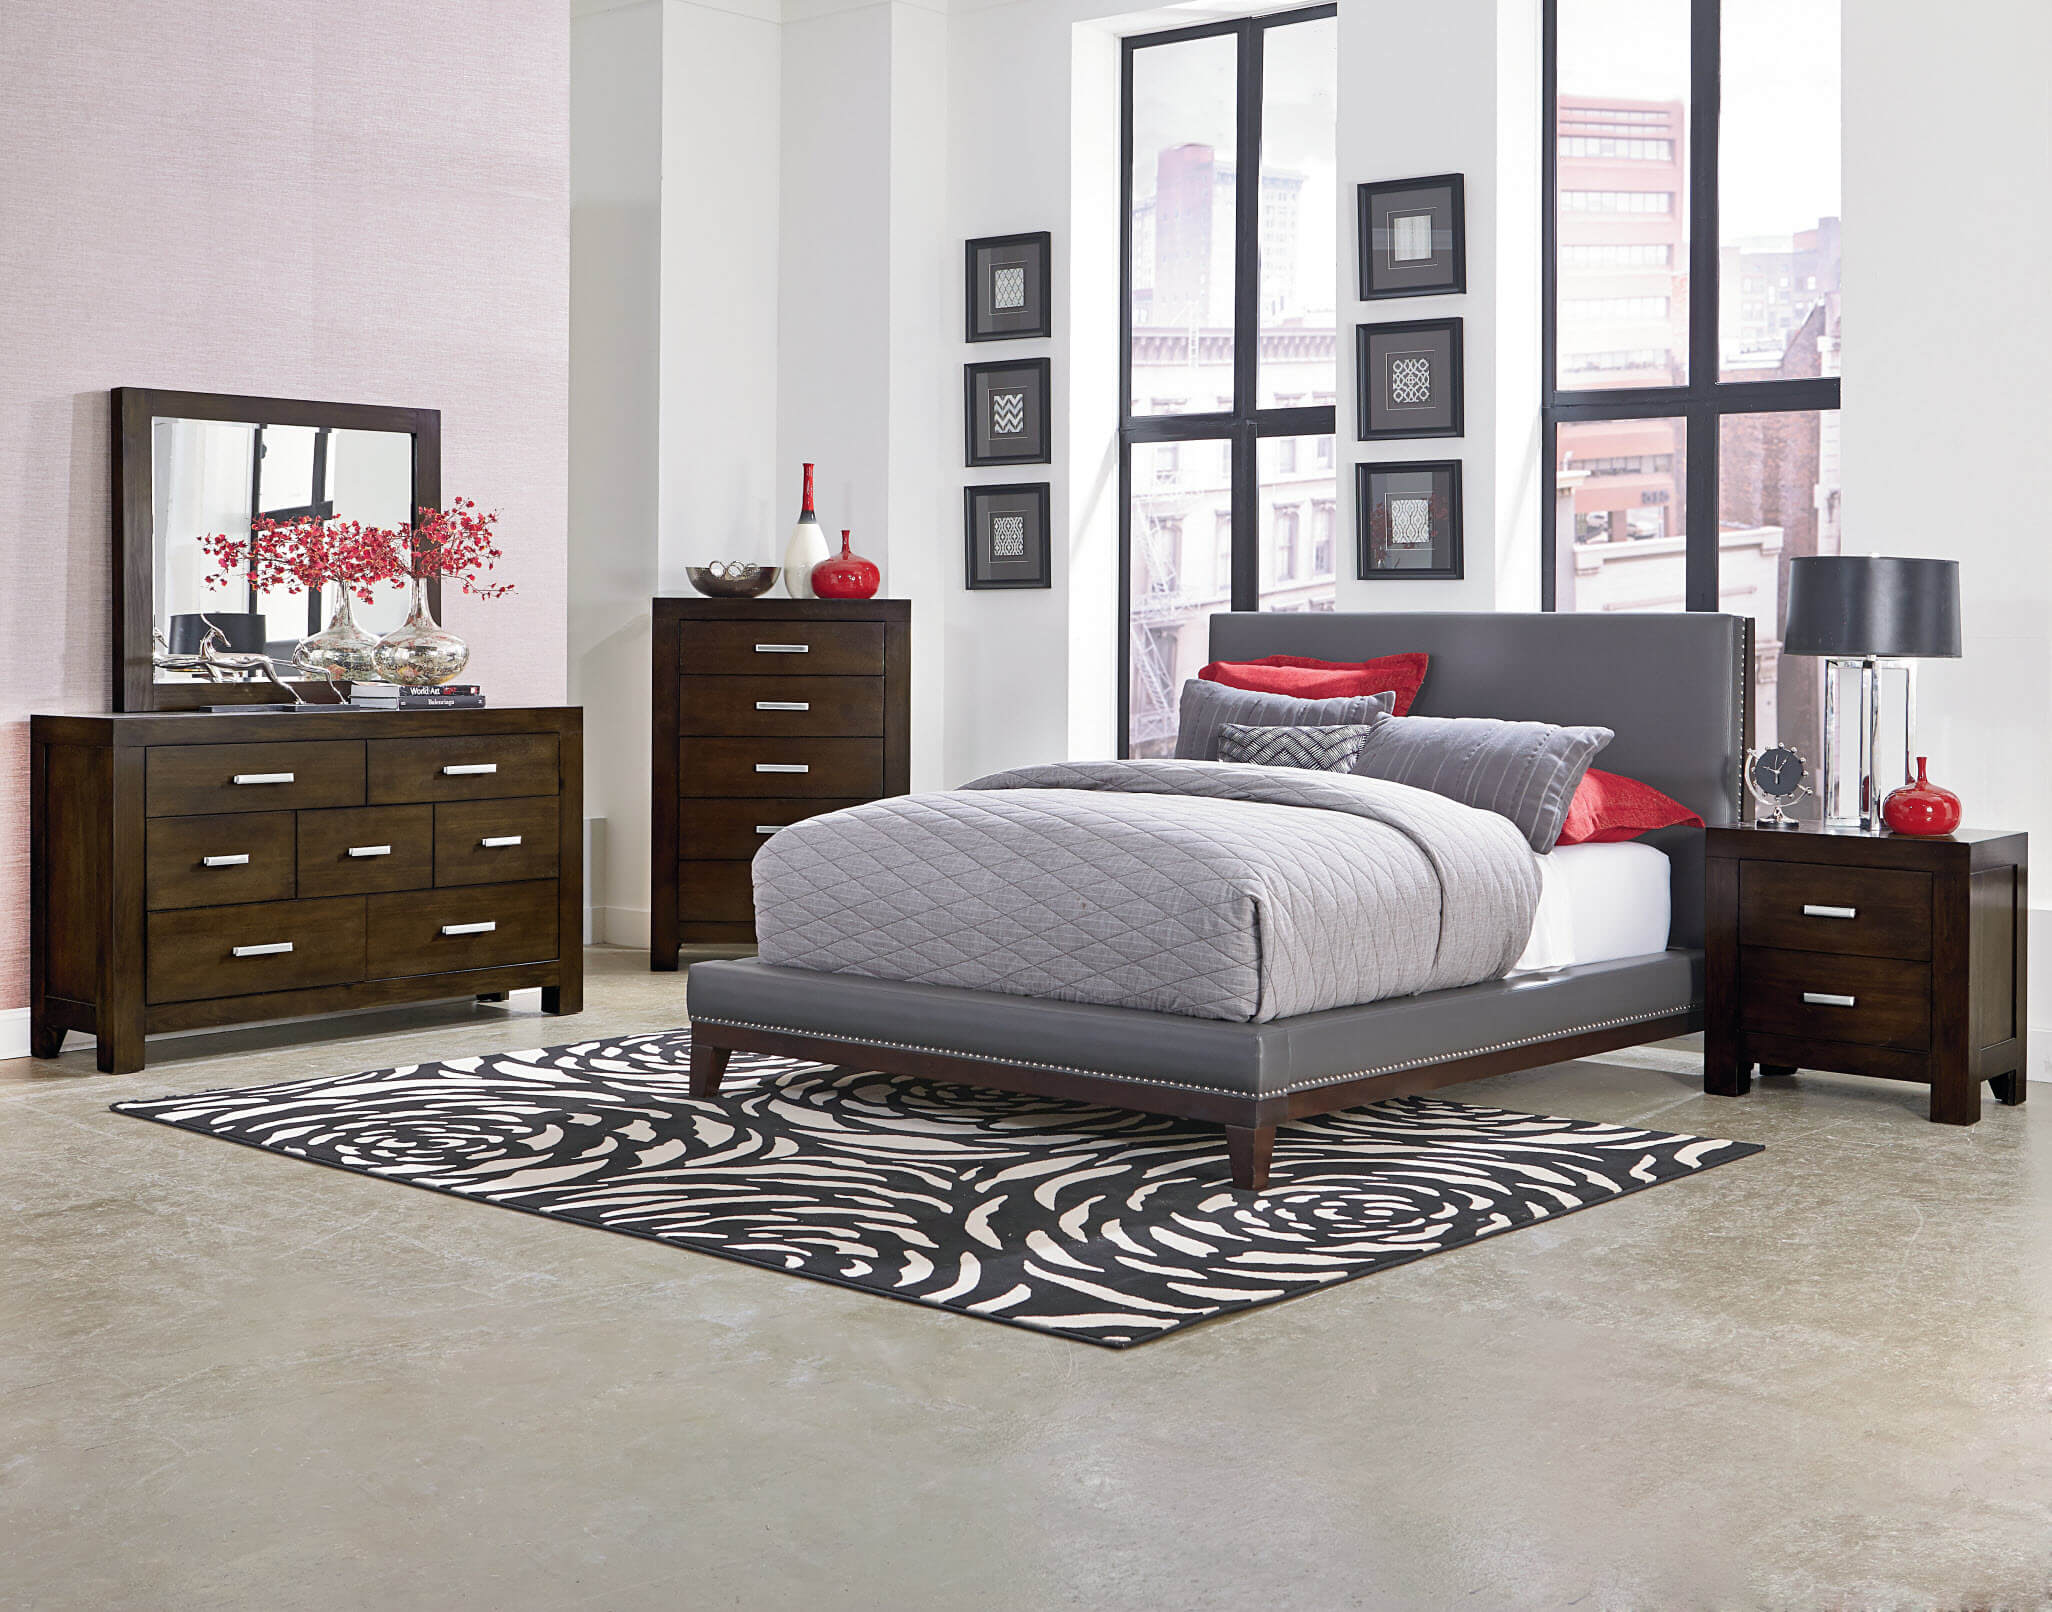 81550 Couture Platform Bedroom Set By Standard Furniture U2013 DISCONTINUED